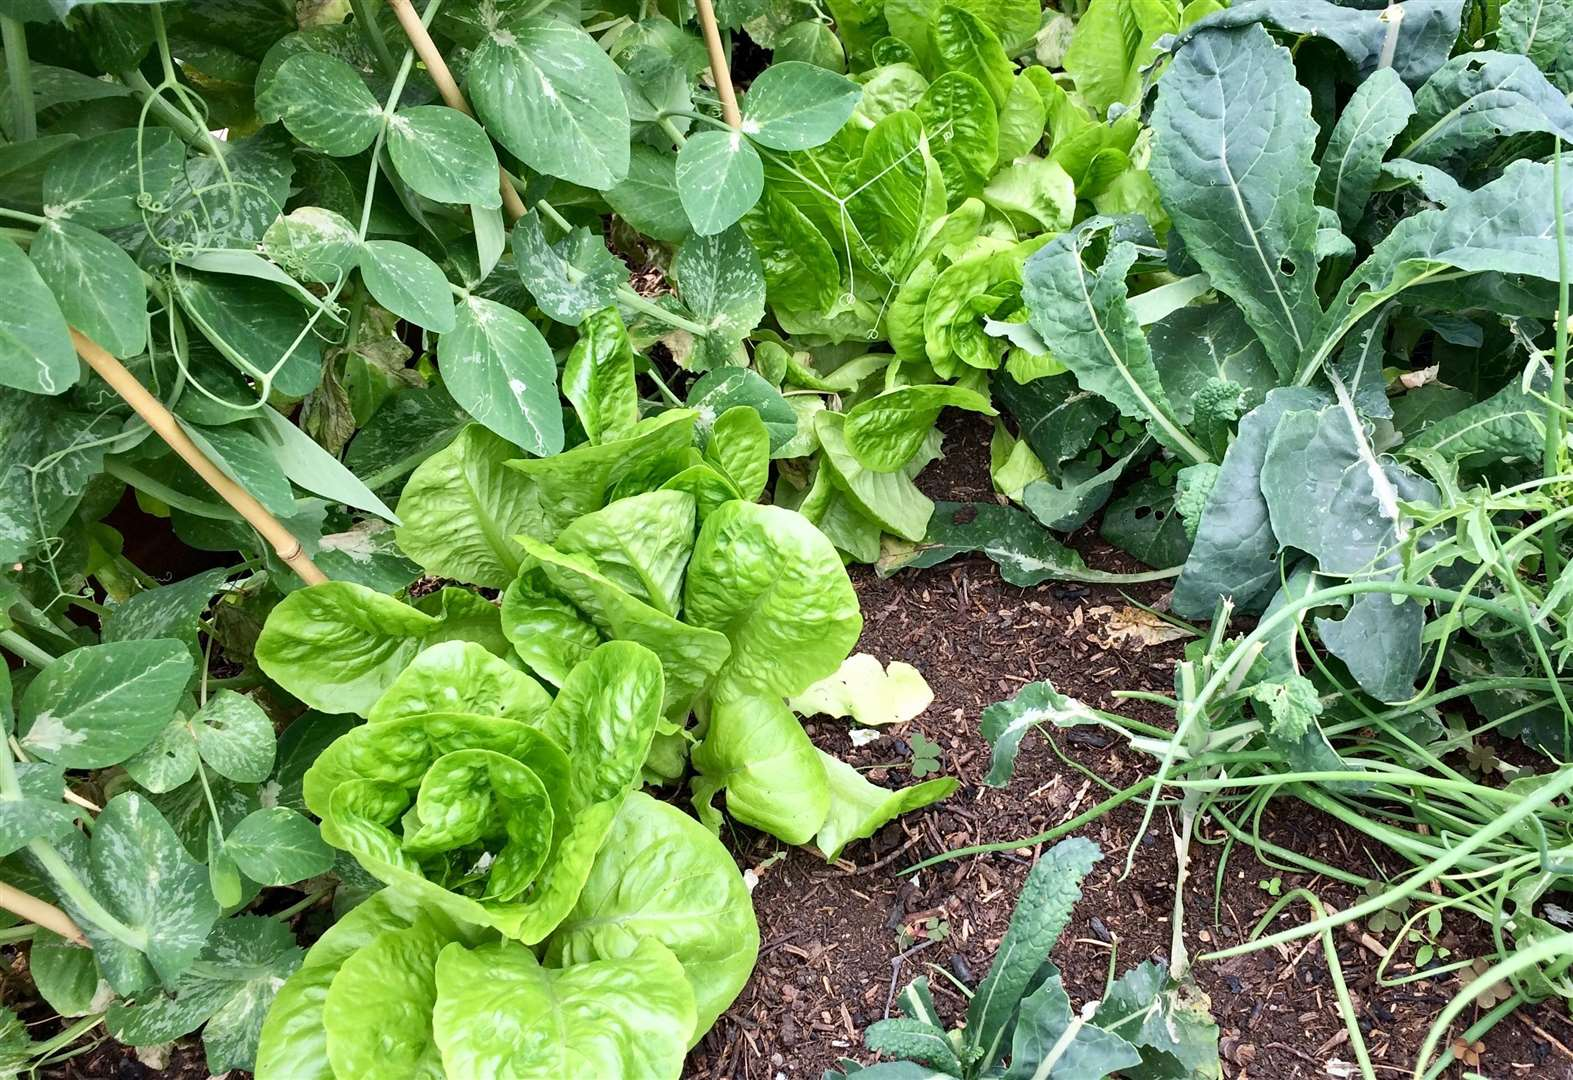 A snapshot of Trish's impressive vegetable patch.